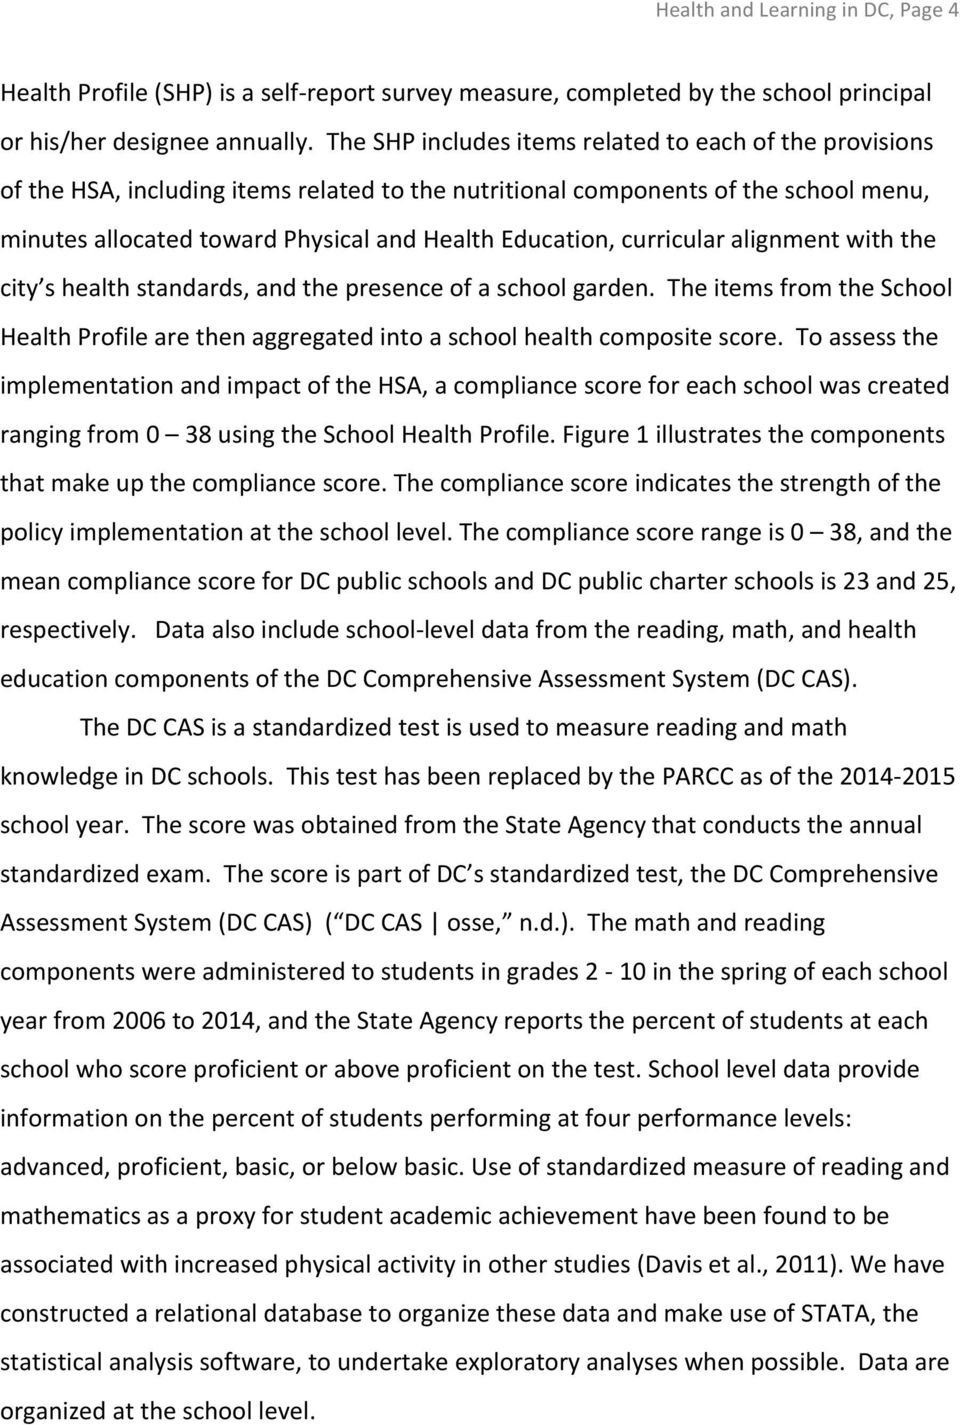 curricular alignment with the city s health standards, and the presence of a school garden. The items from the School Health Profile are then aggregated into a school health composite score.